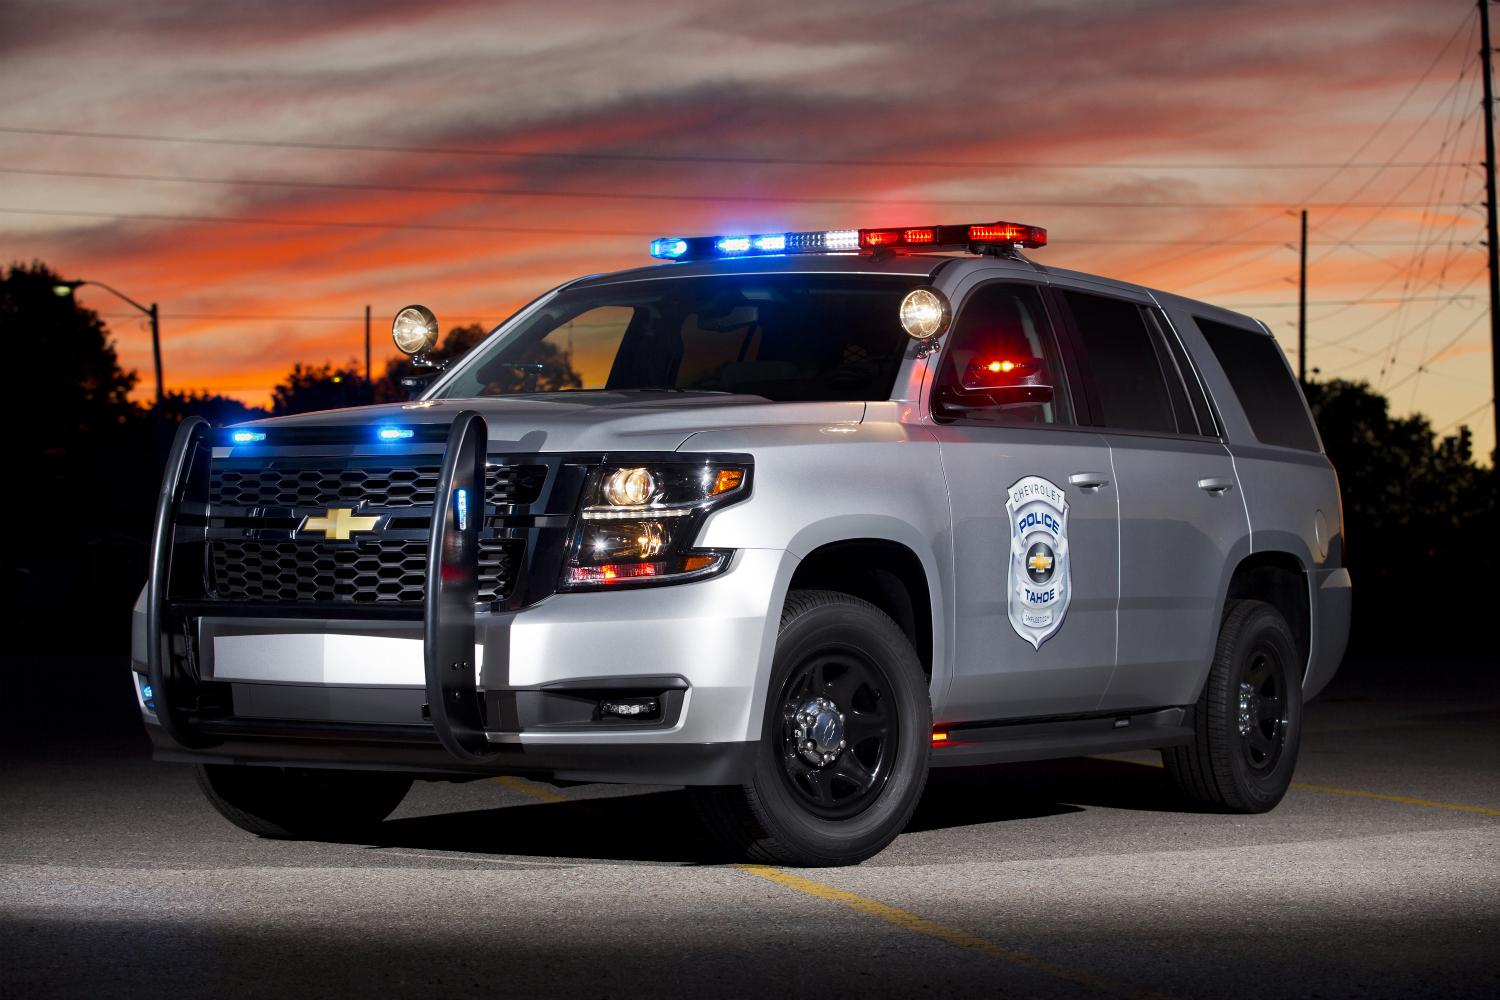 2015 Chevrolet Tahoe PPV | Chevy's ultimate police truck | Digital Trends